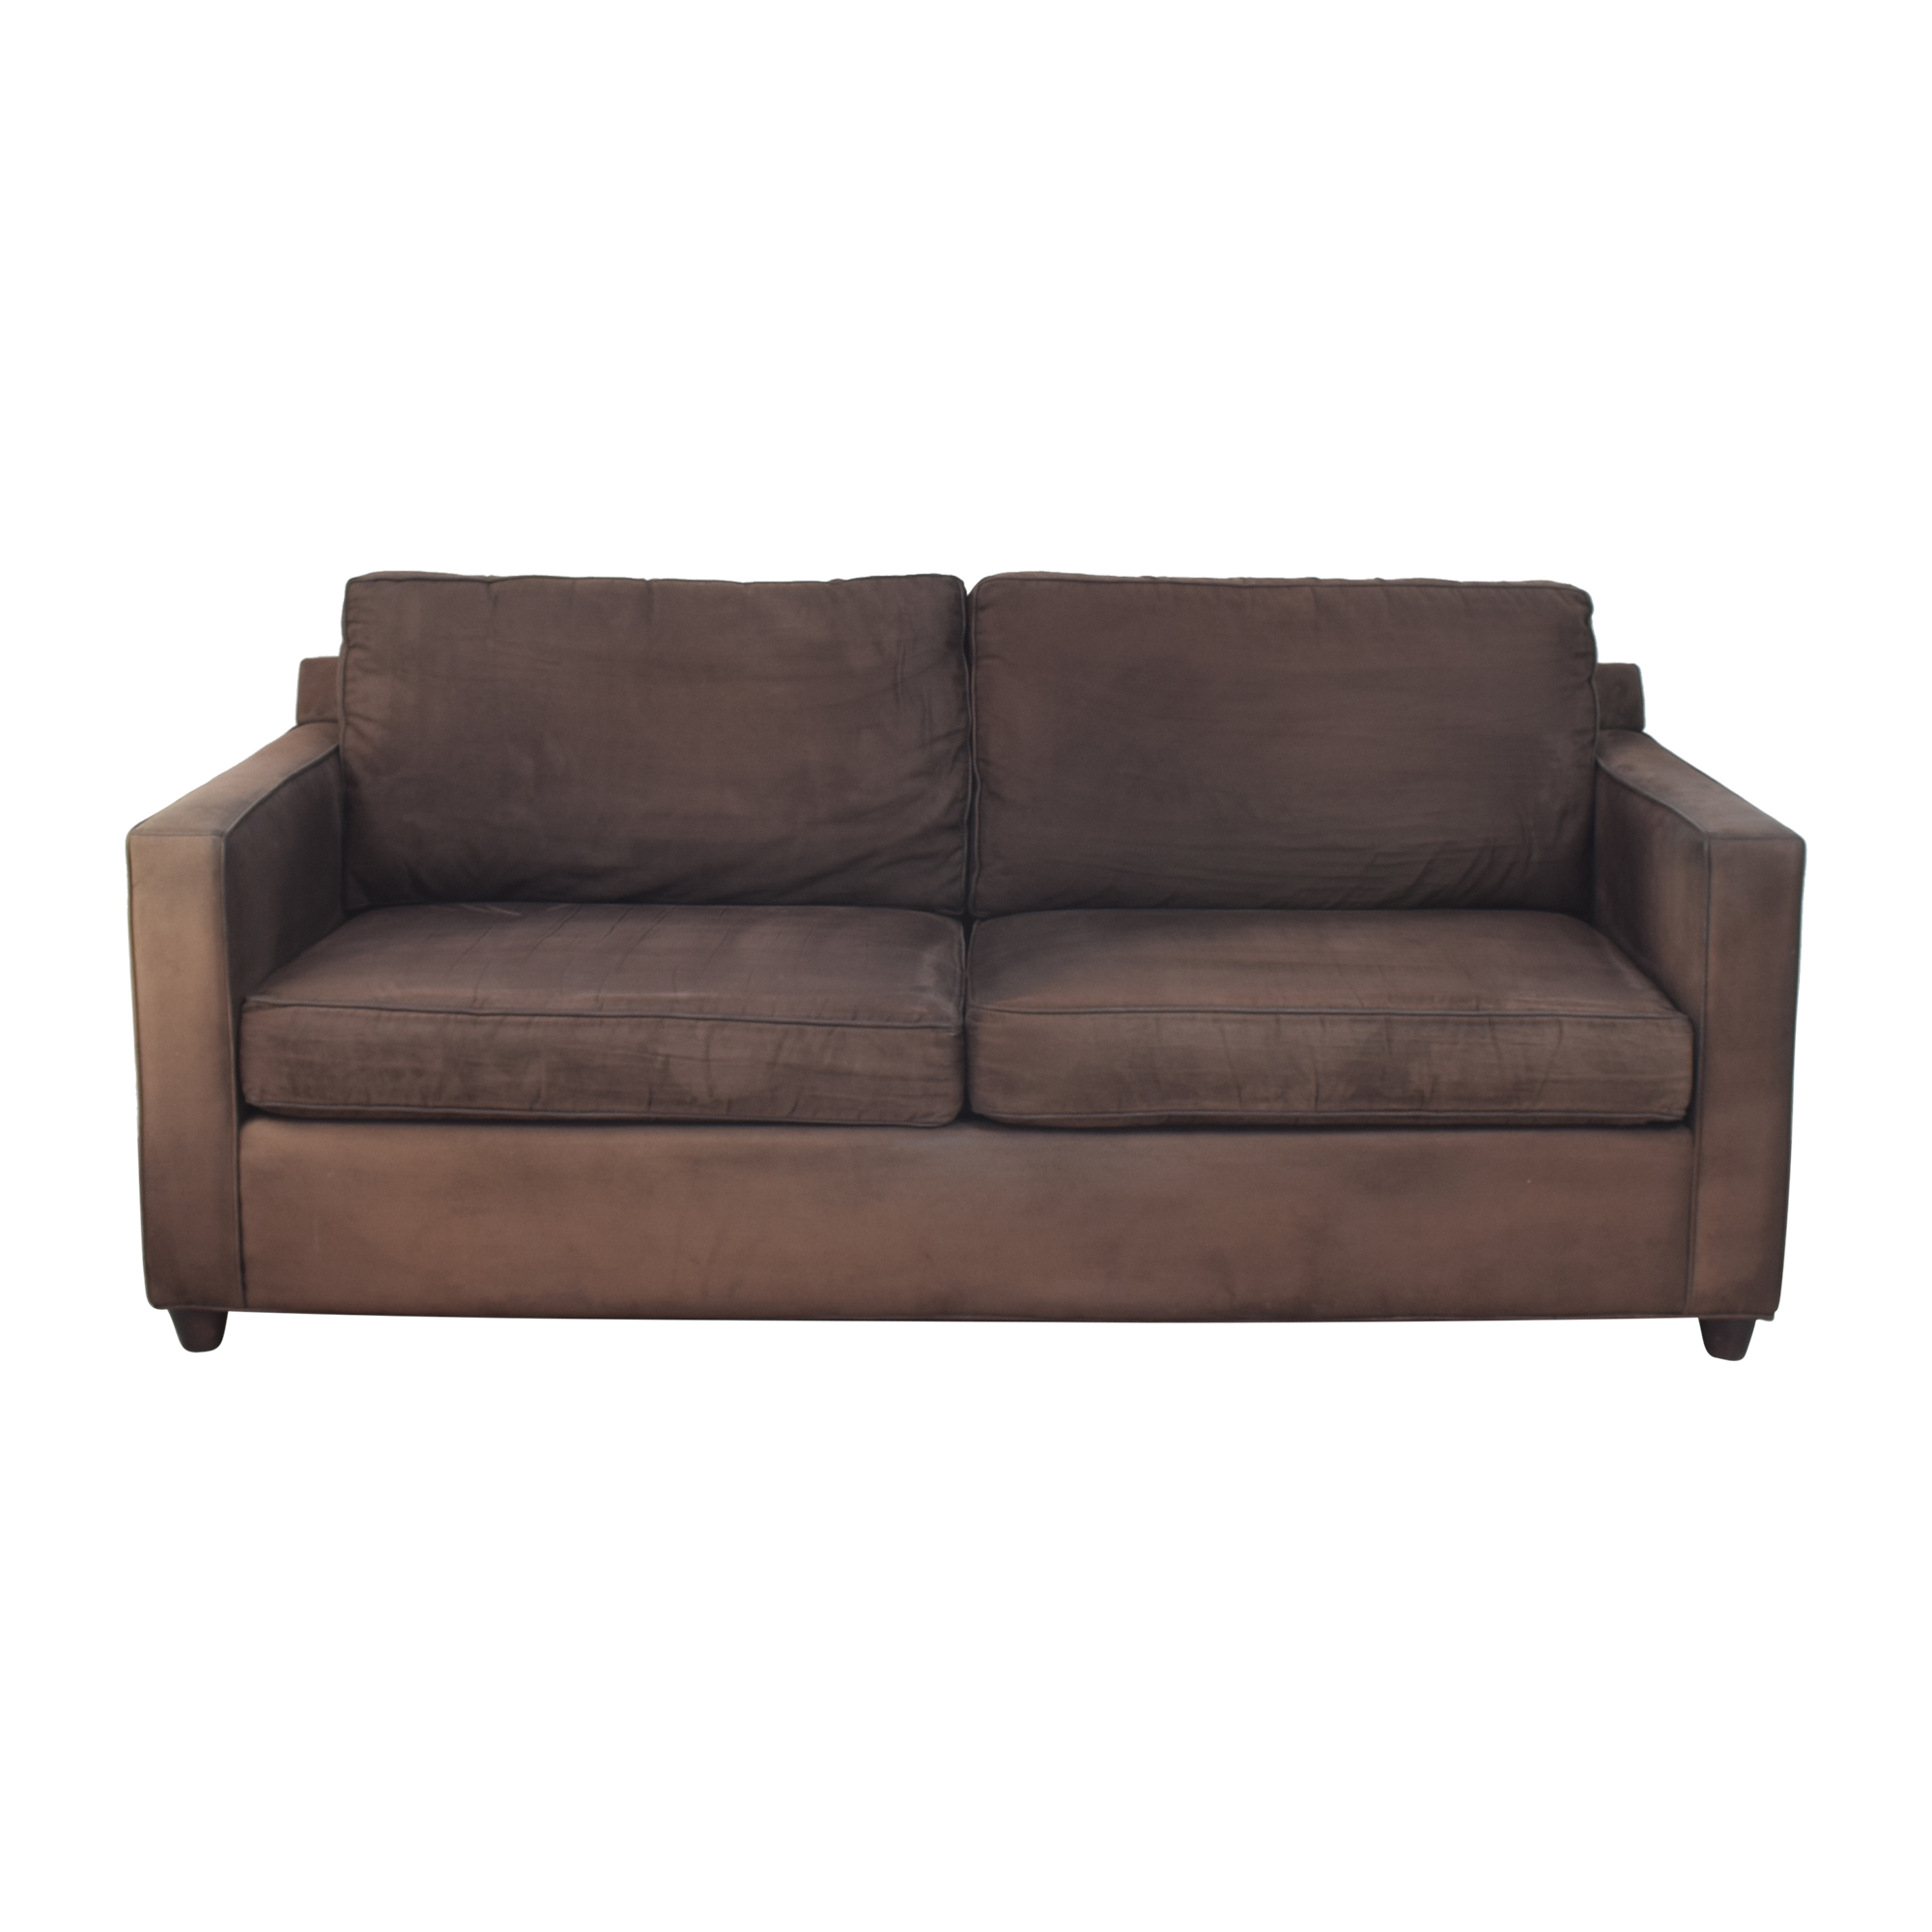 shop Crate & Barrel Crate & Barrel Barrett Two Cushion Sofa online